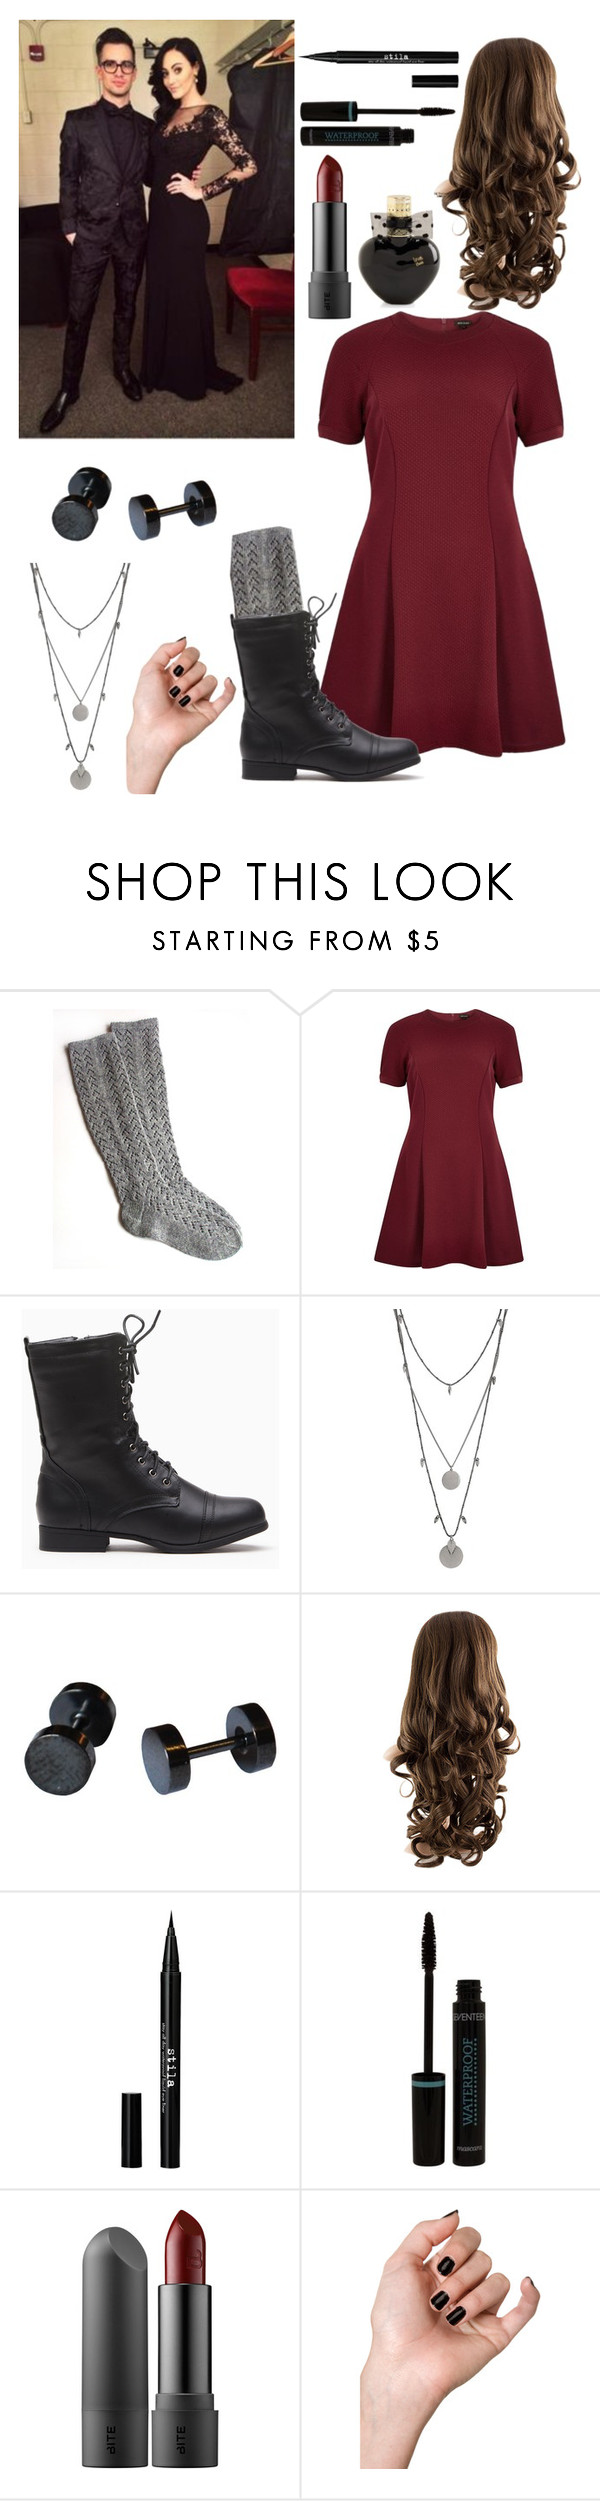 """•Award Show w/ Your Parents(Sarah & Brendon Urie)•"" by deminevaeh ❤ liked on Polyvore featuring River Island, Vince Camuto, Stila and Aéropostale"